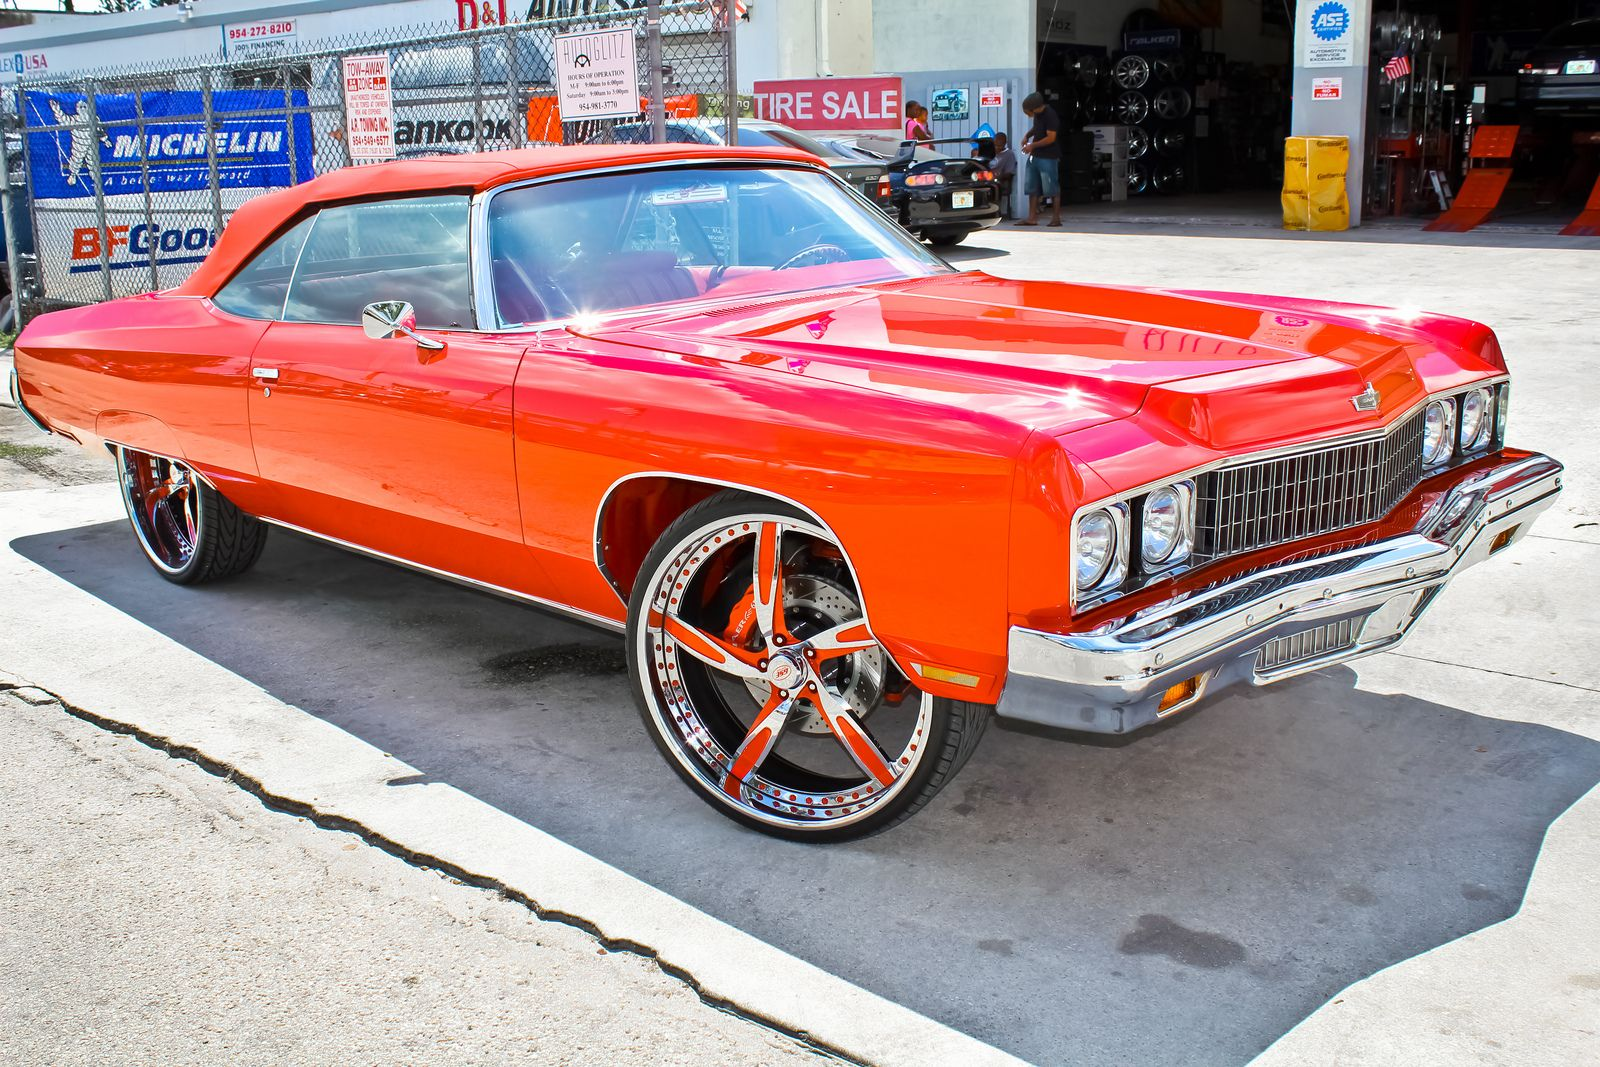 miami donks 2015 | The Donk: Putting Huge Wheels on a Car - photo ...